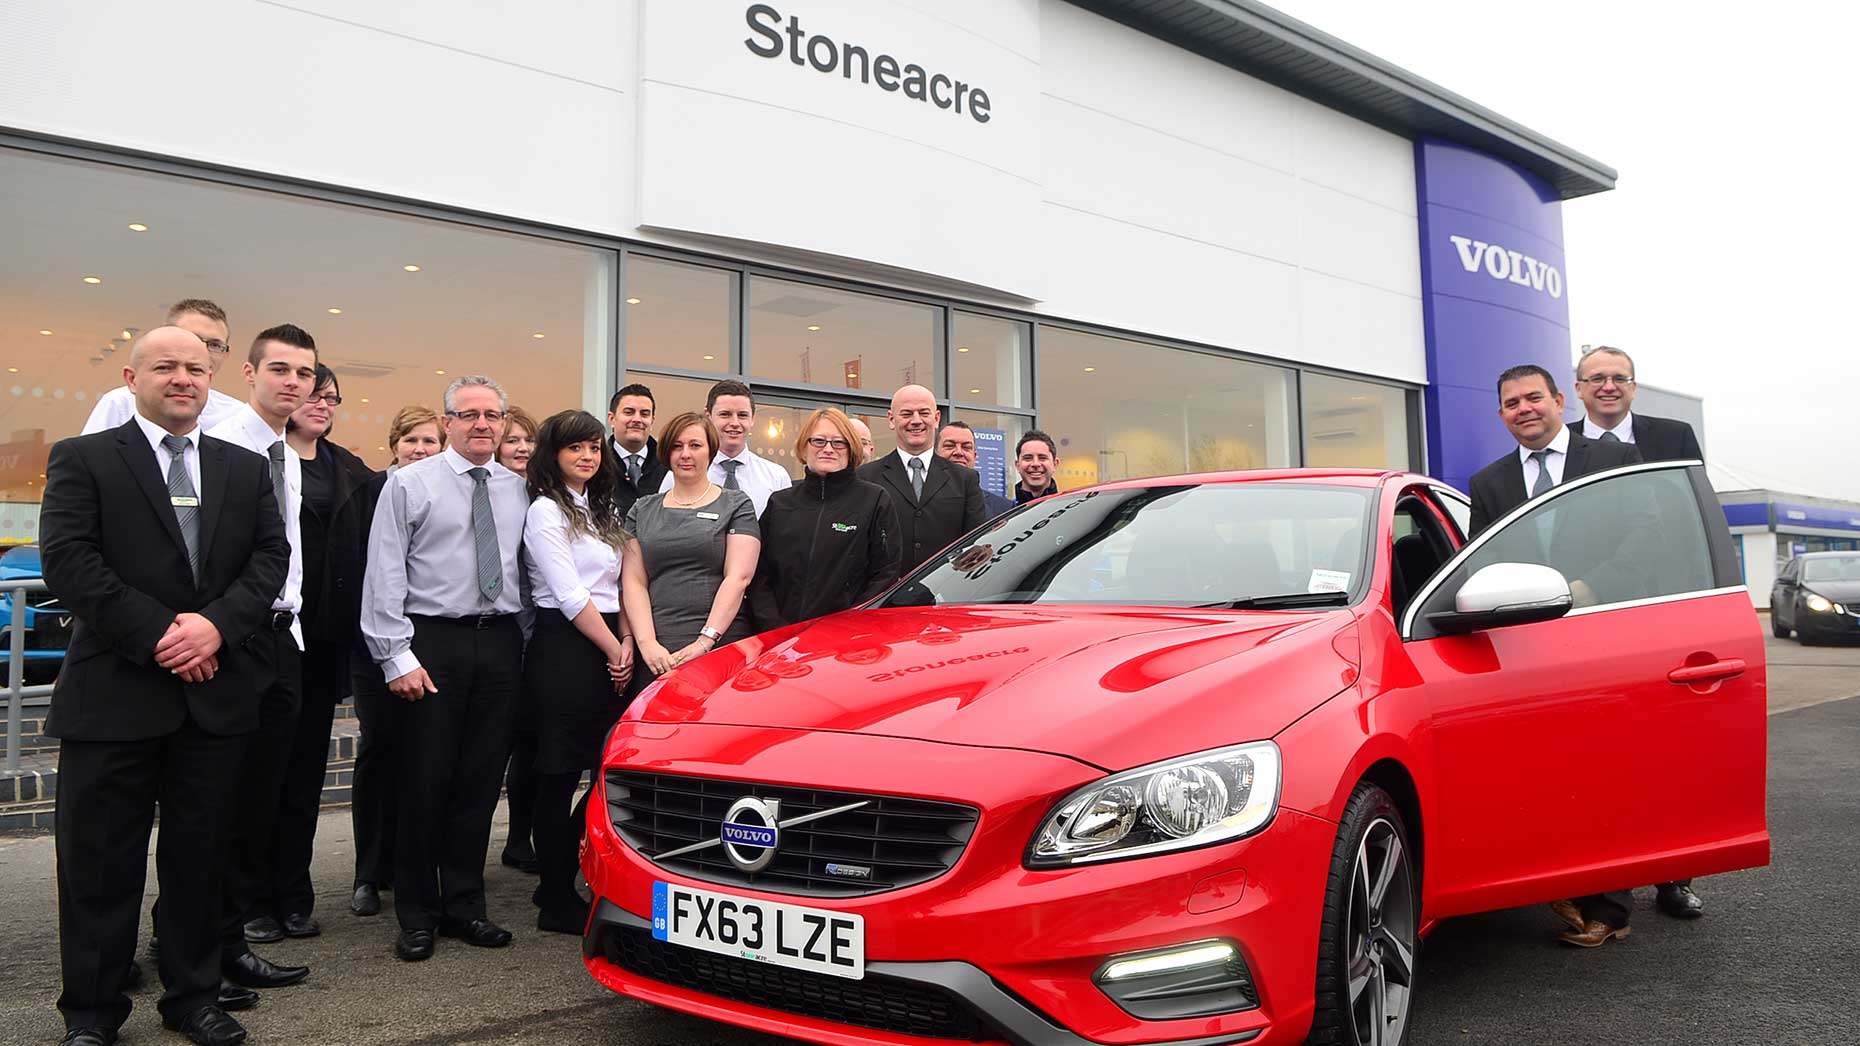 Lincoln stoneacre volvo dealership expands business for Stone acre